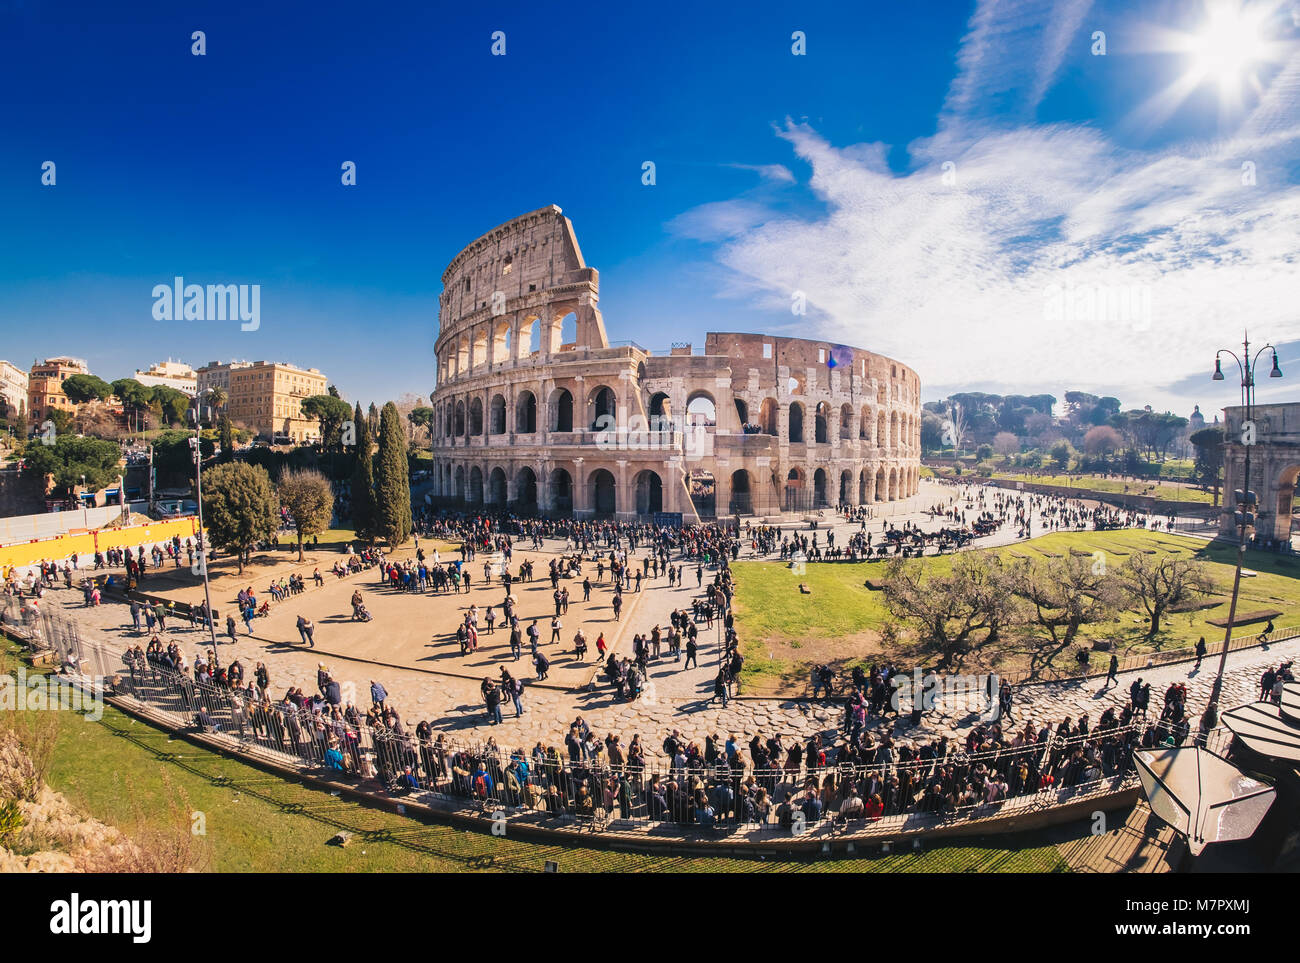 TThe Roman Colosseum in Rome, Italy, HDR panorama - Stock Image